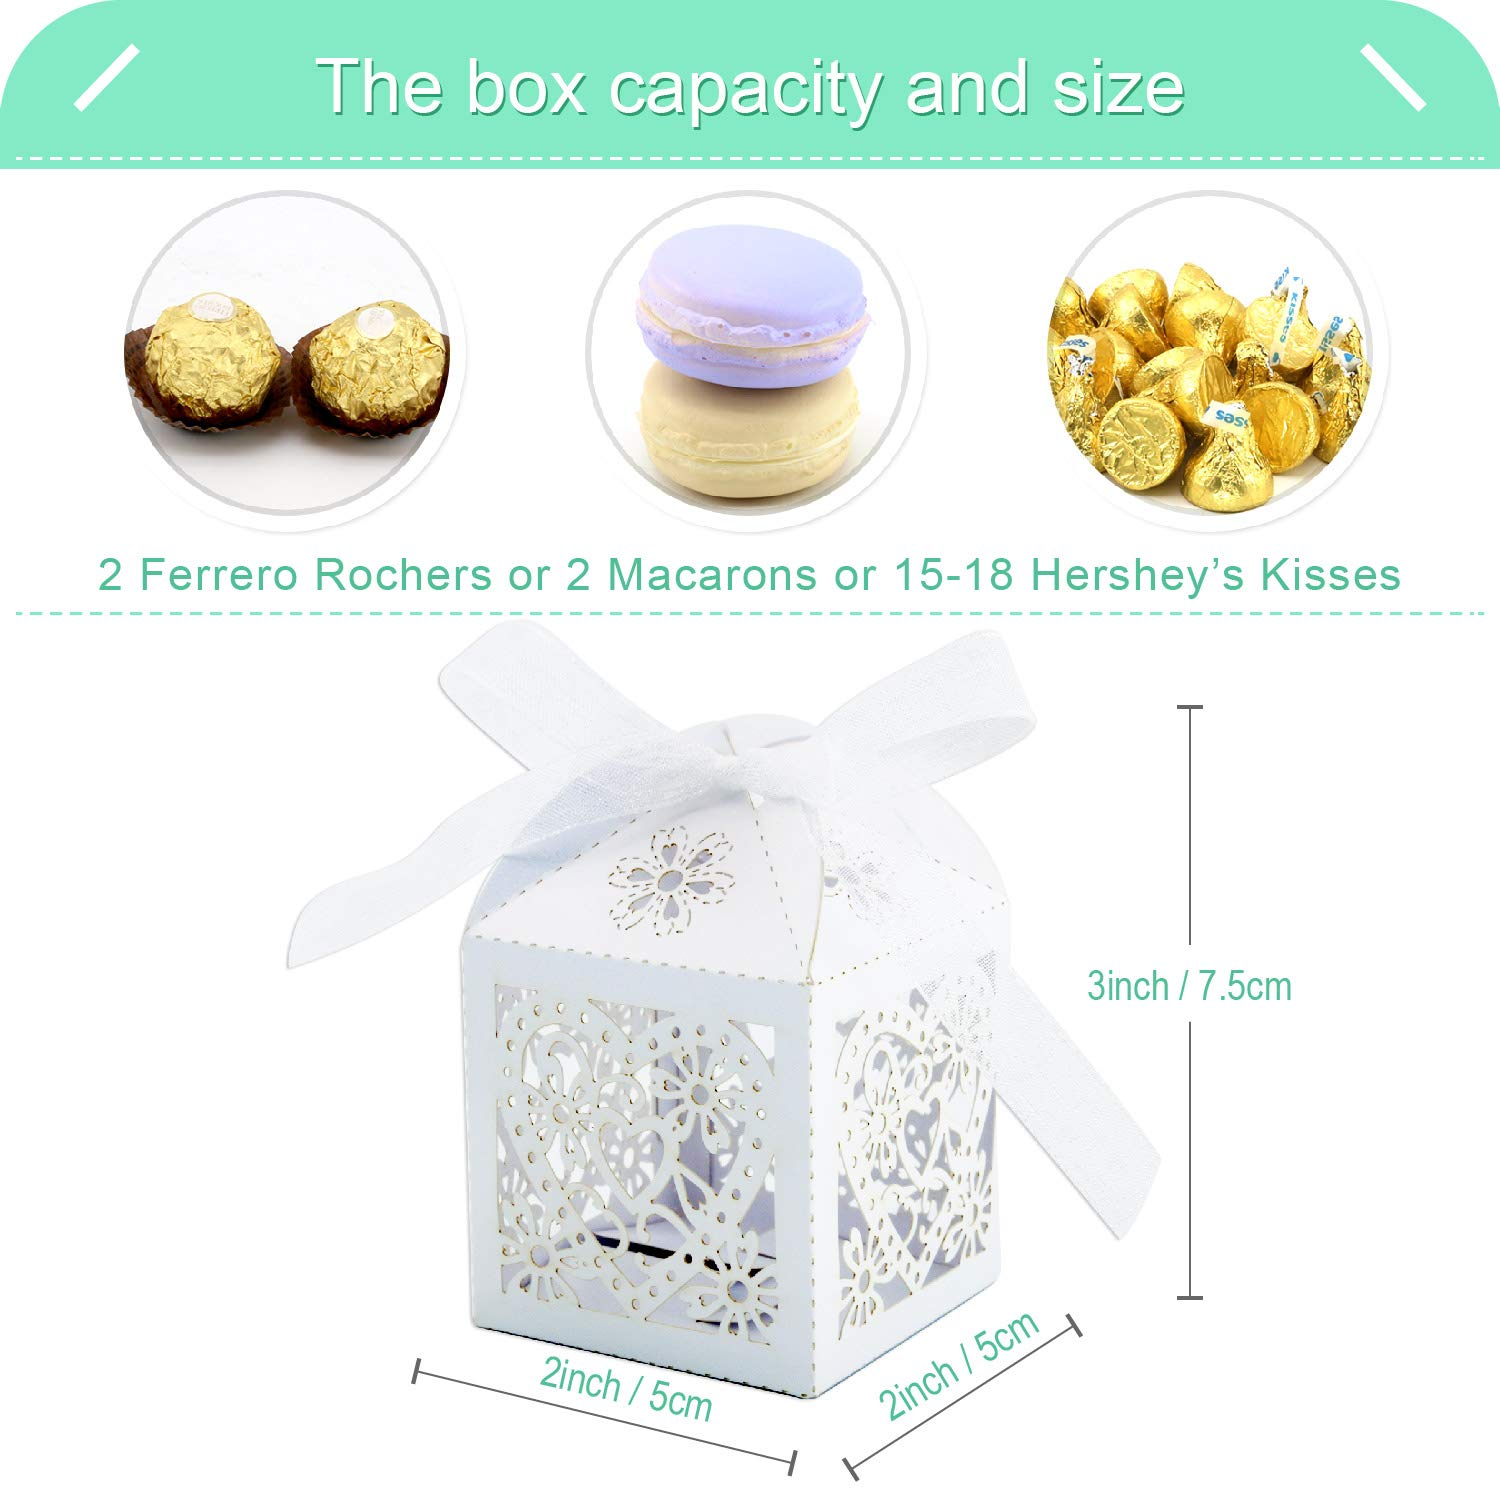 100, Navy COTOPHER 100 Pack Love Heart Laser Cut Candy Boxes Wedding Party Favor Boxes Small Gift Boxes for Wedding Bridal Shower Baby Shower Birthday Party